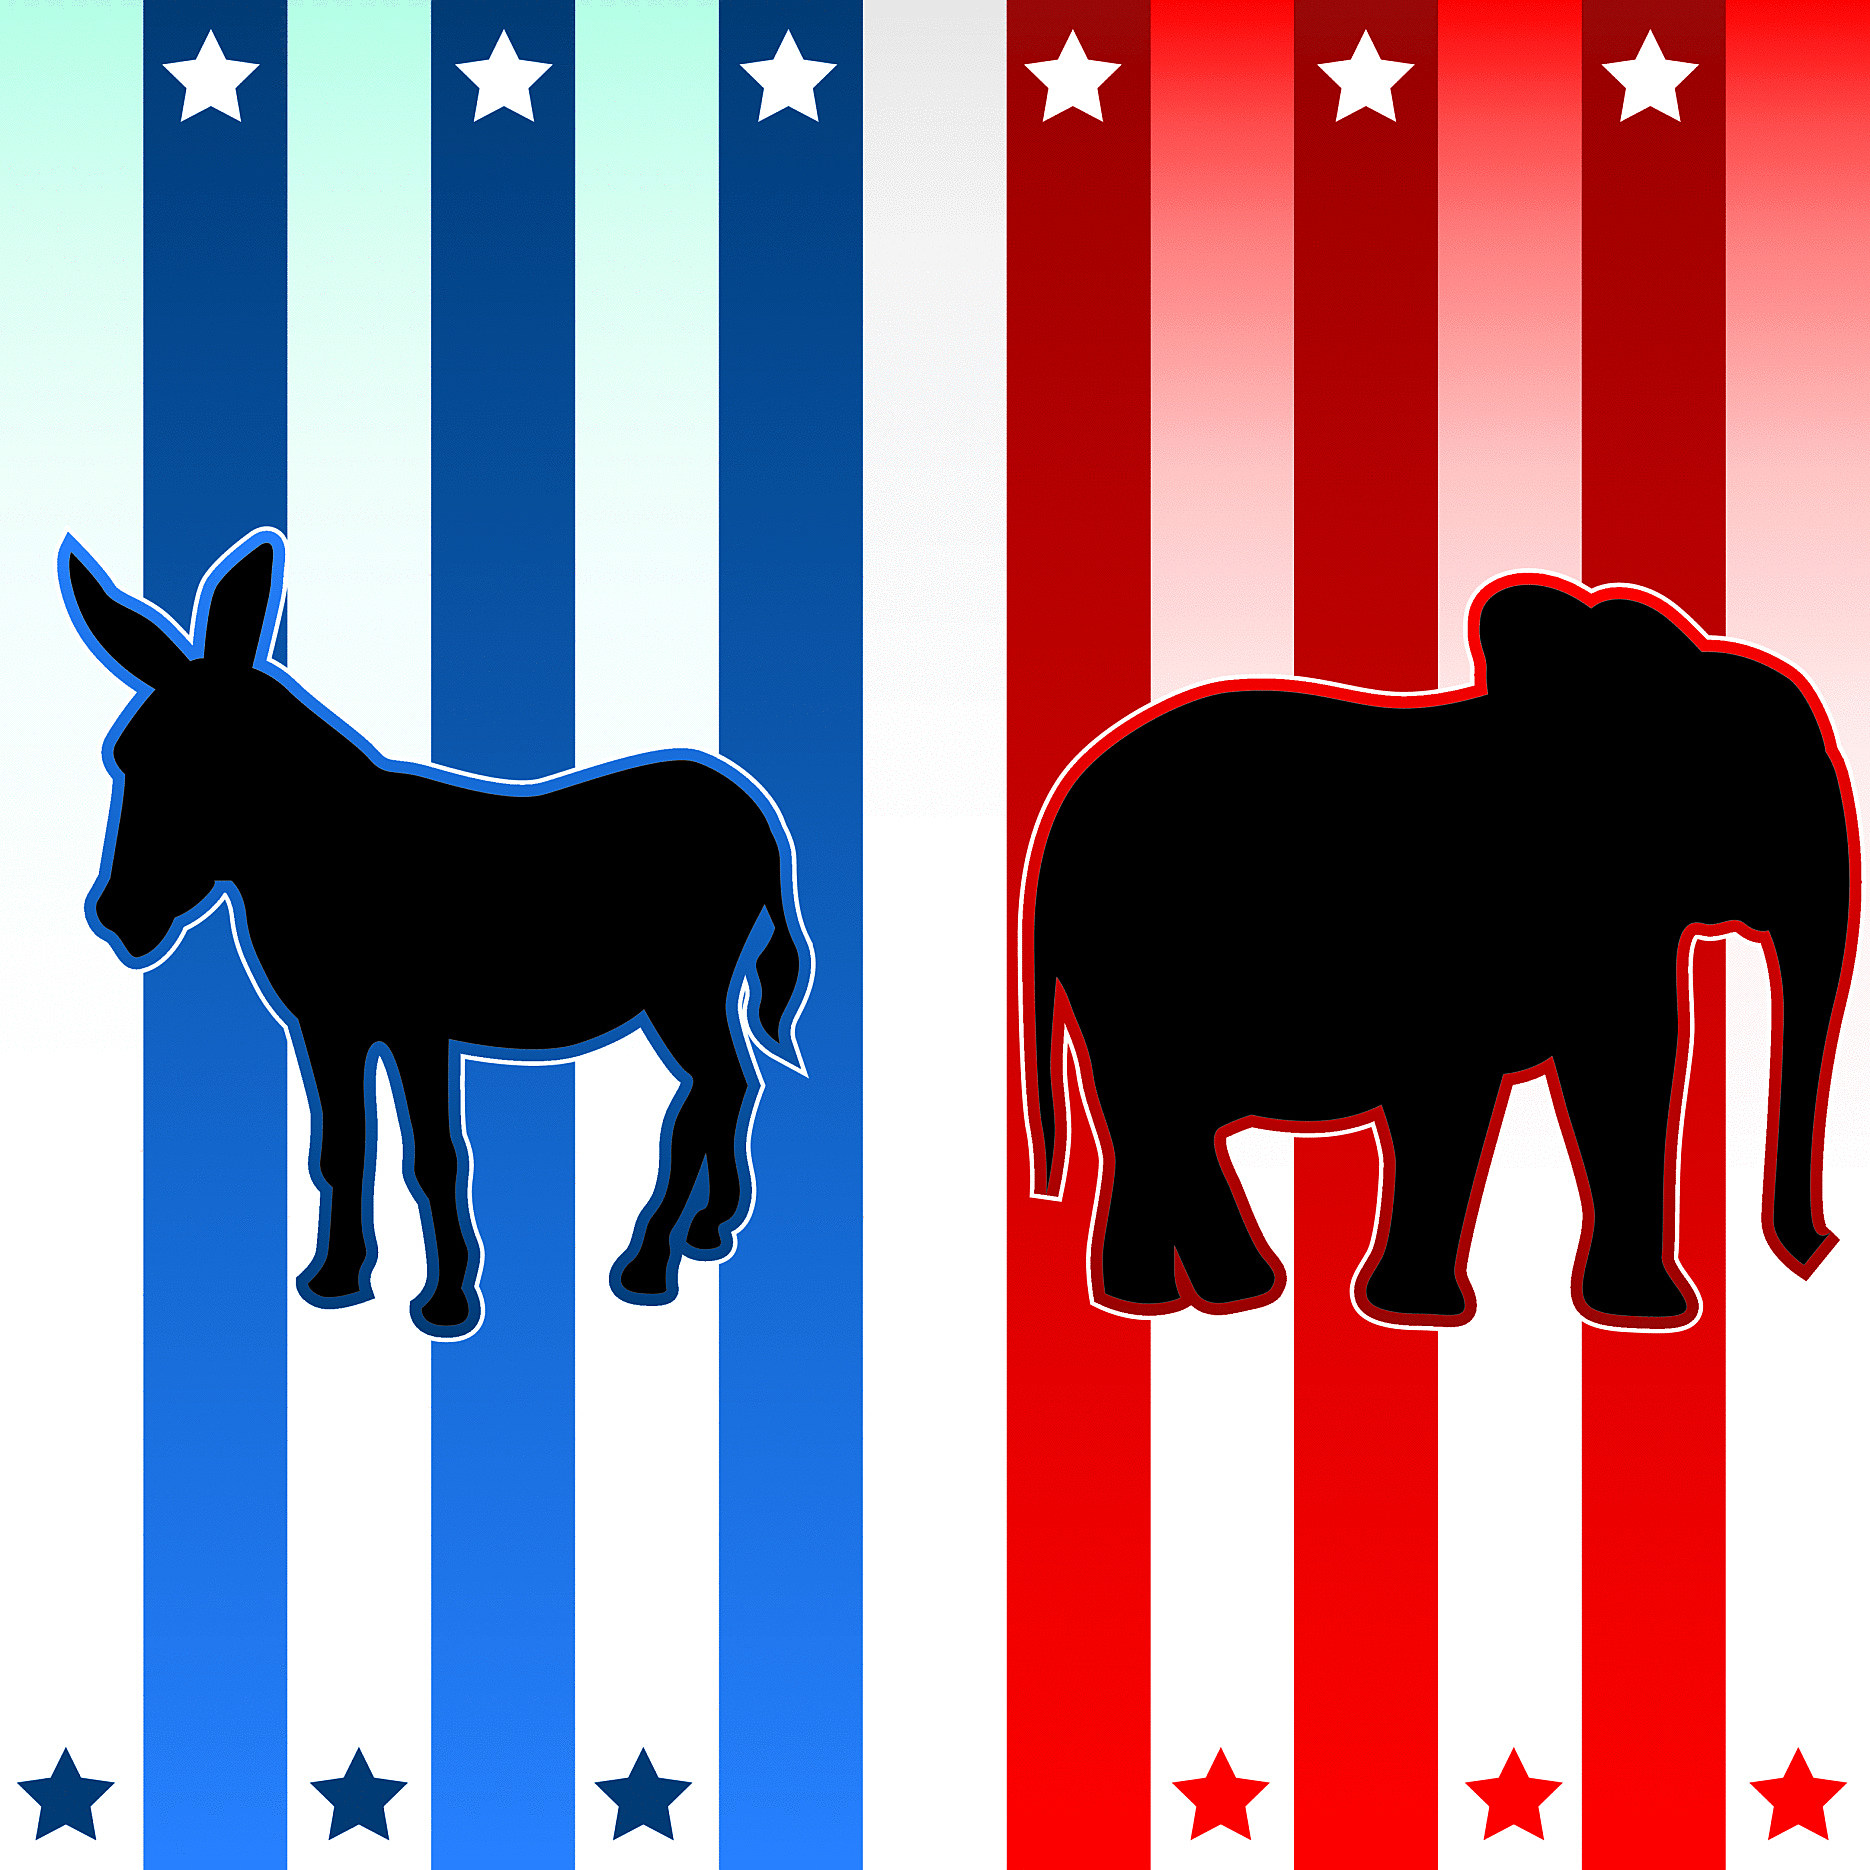 Voters Name Their Republican and Democratic Candidates